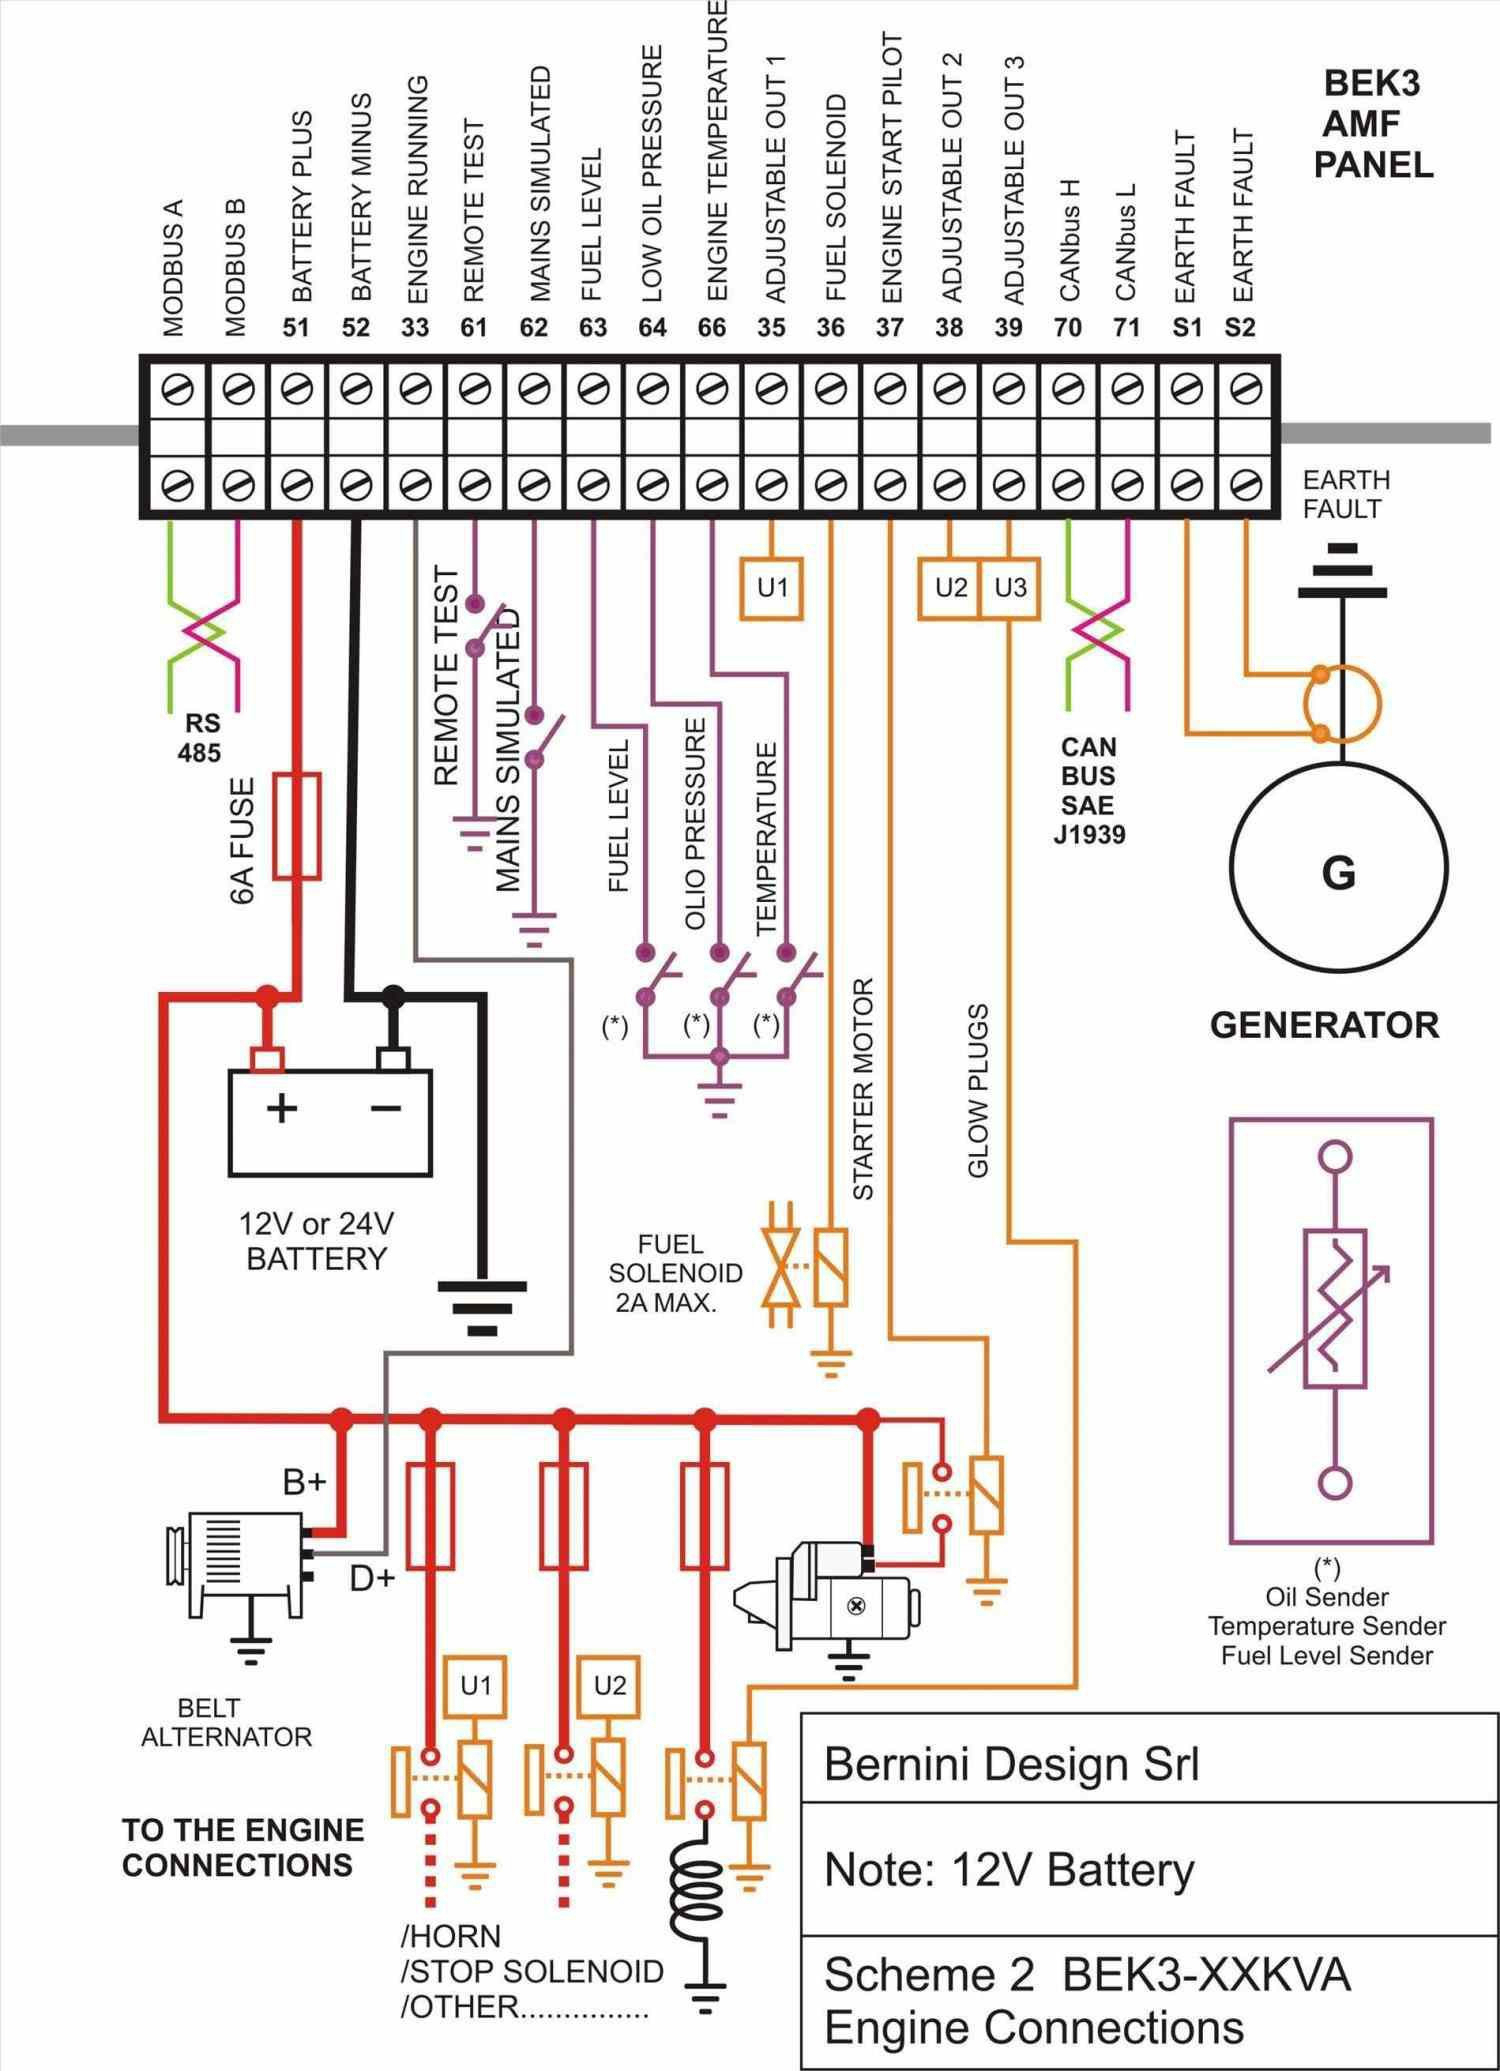 Honeywell Thermostat Wiring Diagram Th 52200 | Wiring Diagram - Honeywell Lyric T5 Wiring Diagram